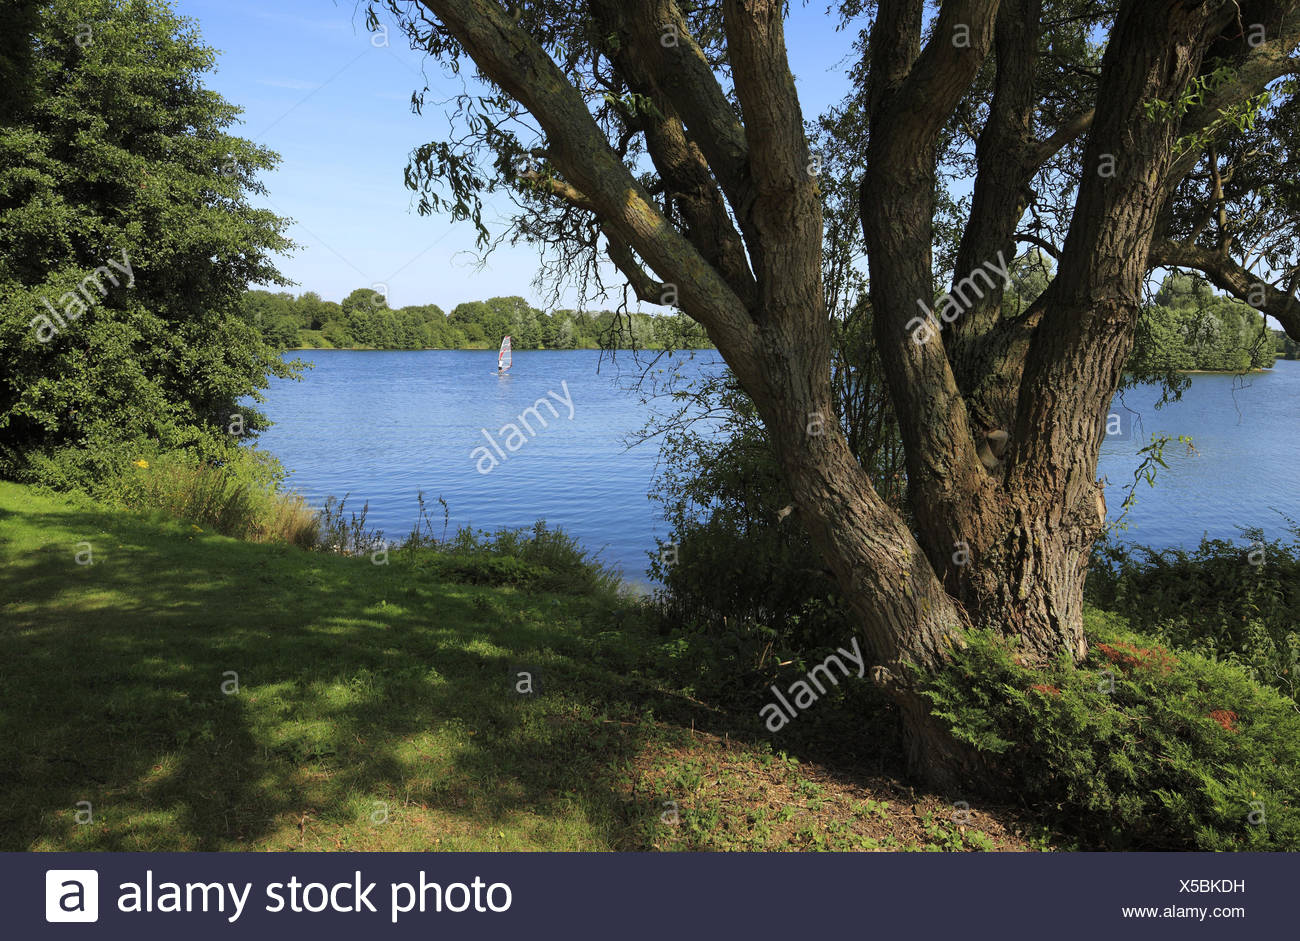 Elfrather lake in Krefeld-Ürdingen, North Rhine-Westphalia, Germany, Stock Photo